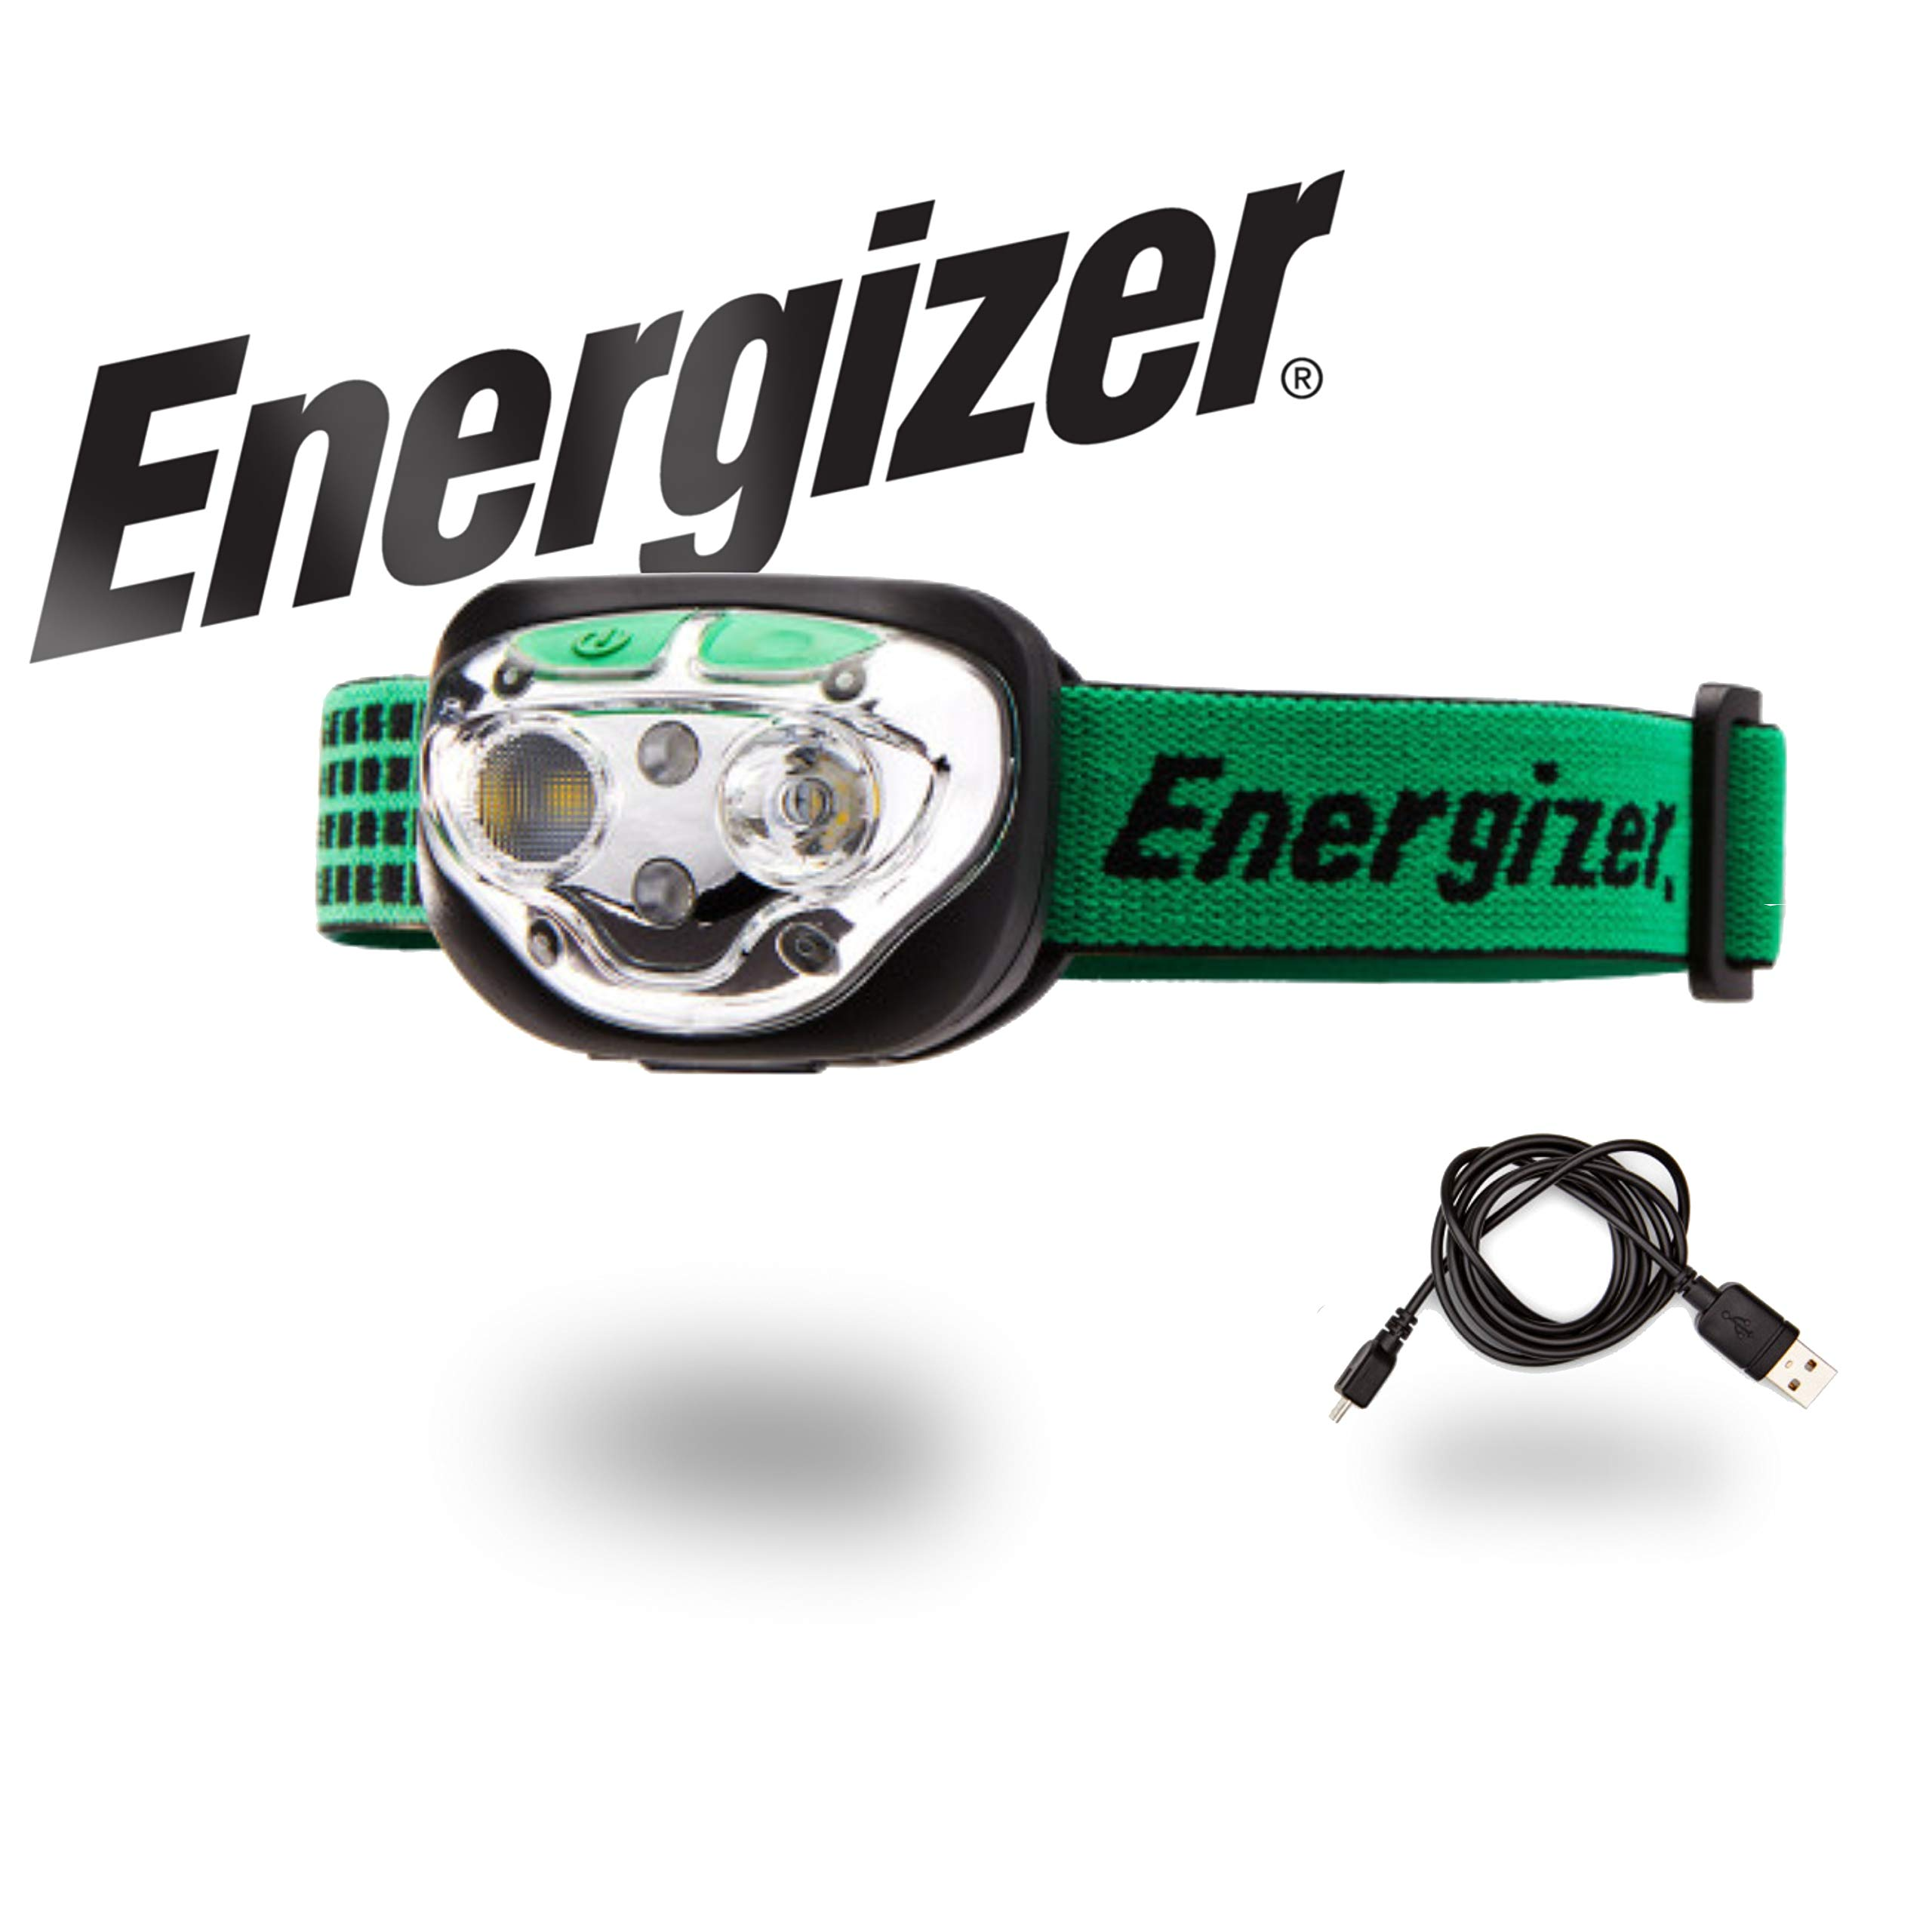 Energizer LED Headlamp Flashlight, High Lumens, for Camping, Running, Hiking, Sports, Outdoor Head Lamp, Rechargeable Headlamp Option, Water-Resistant Headlight